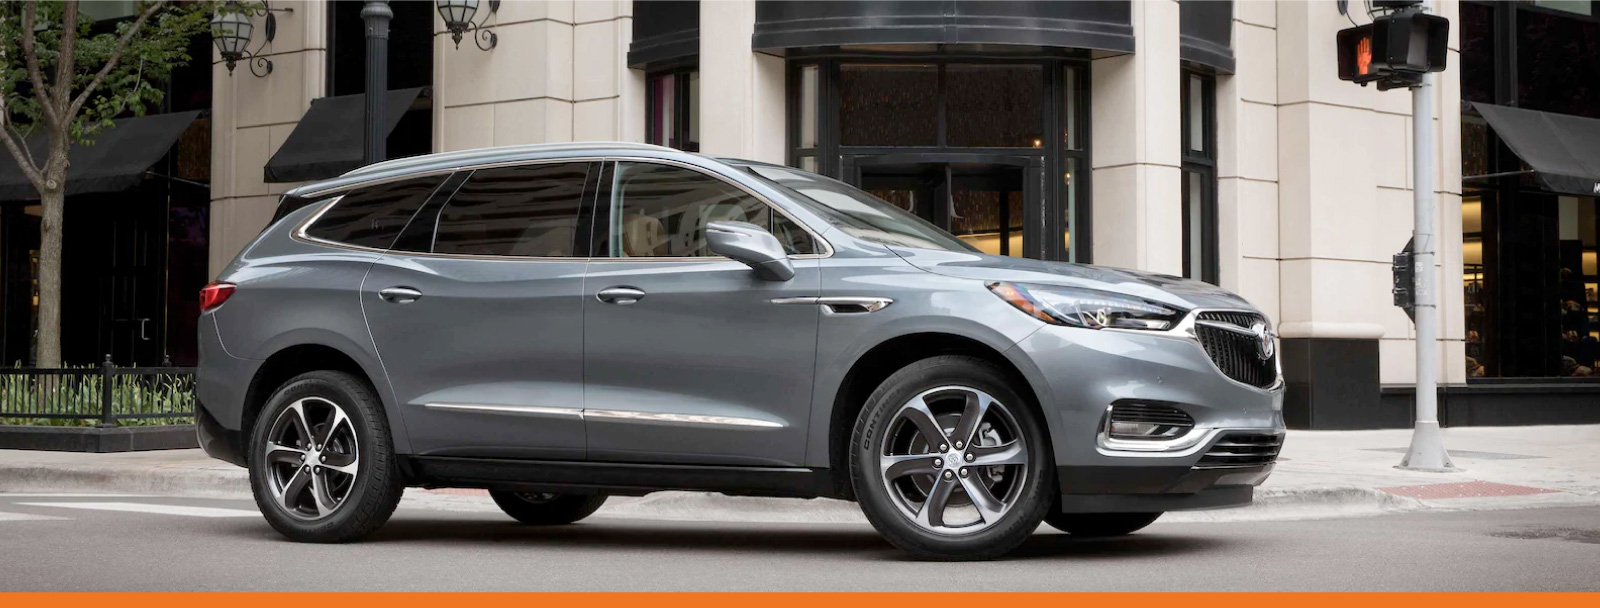 New 2021 Buick Enclave